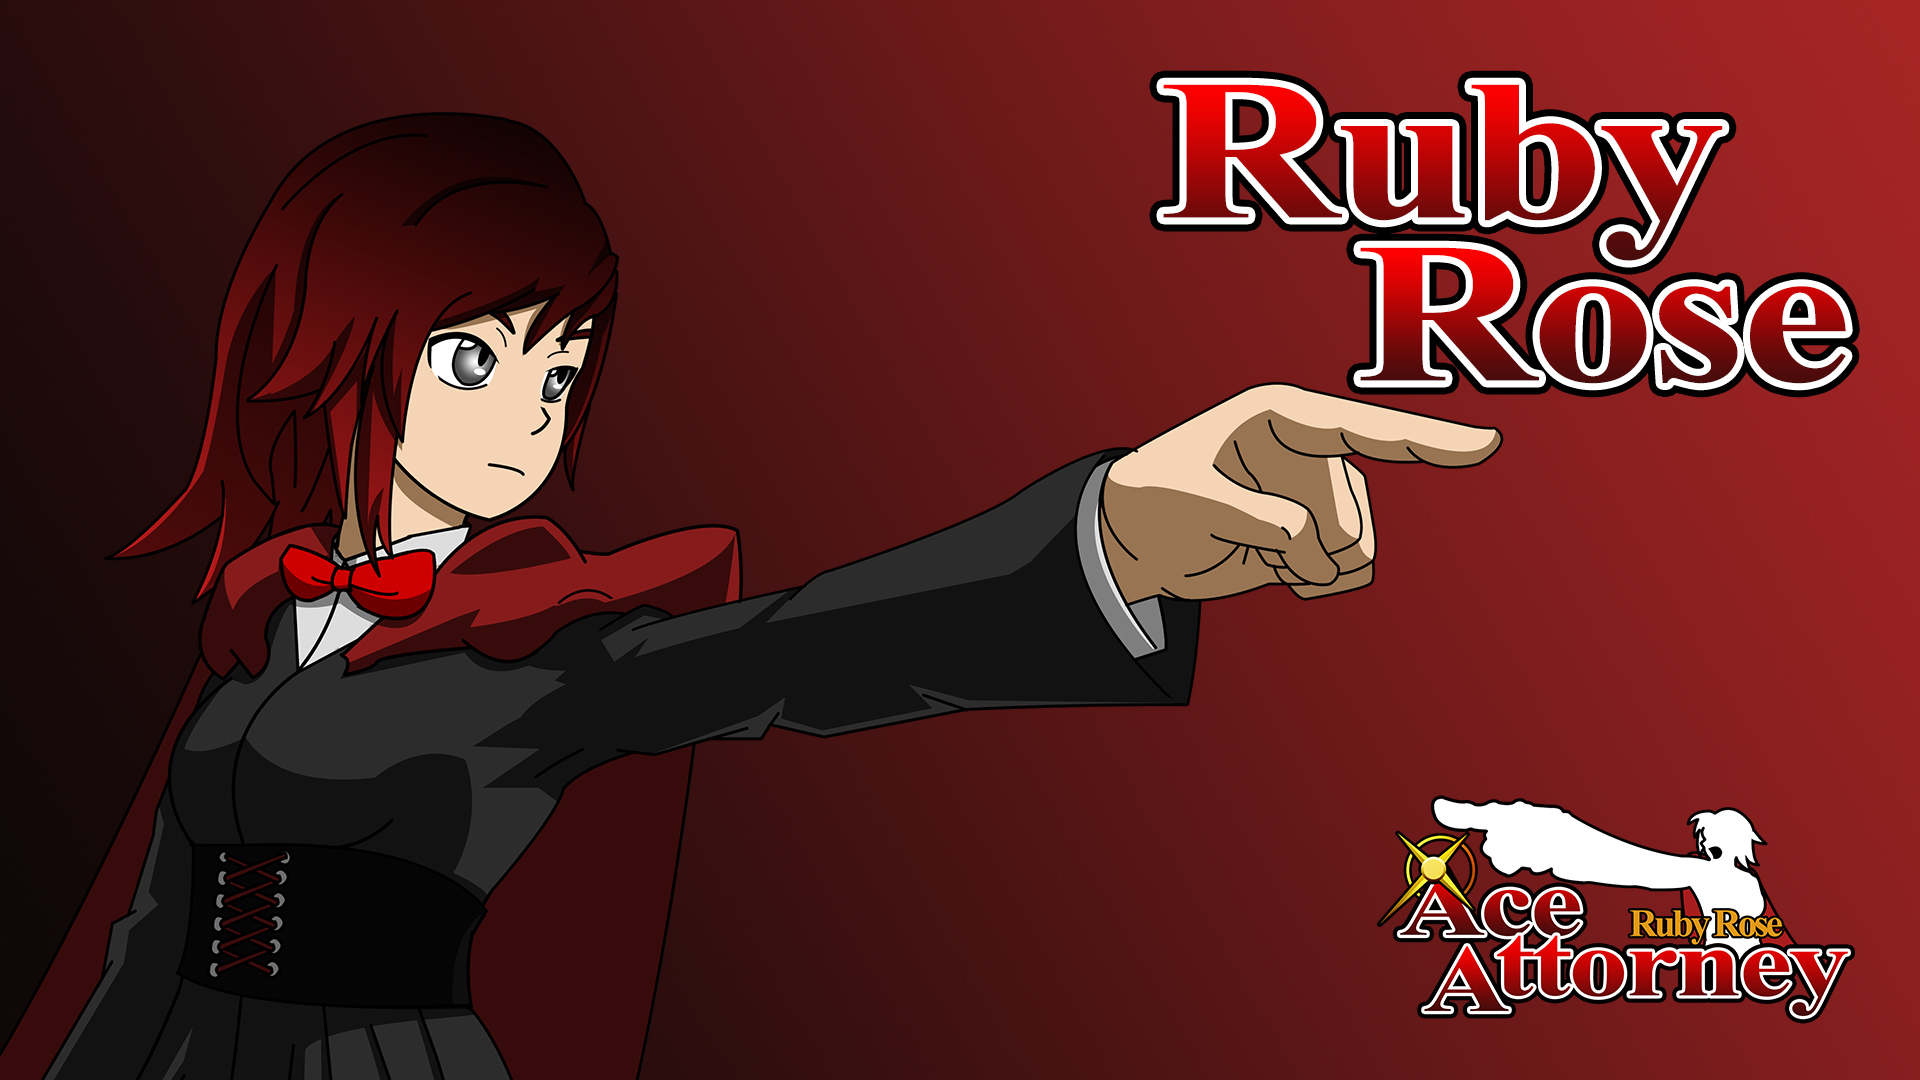 Free Download Ruby Rose Ace Attorney Ruby Wallpaper By Iceninjax77 On 1920x1080 For Your Desktop Mobile Tablet Explore 74 Ace Attorney Wallpaper Phoenix Wright Wallpaper Phoenix Wright Ace Attorney